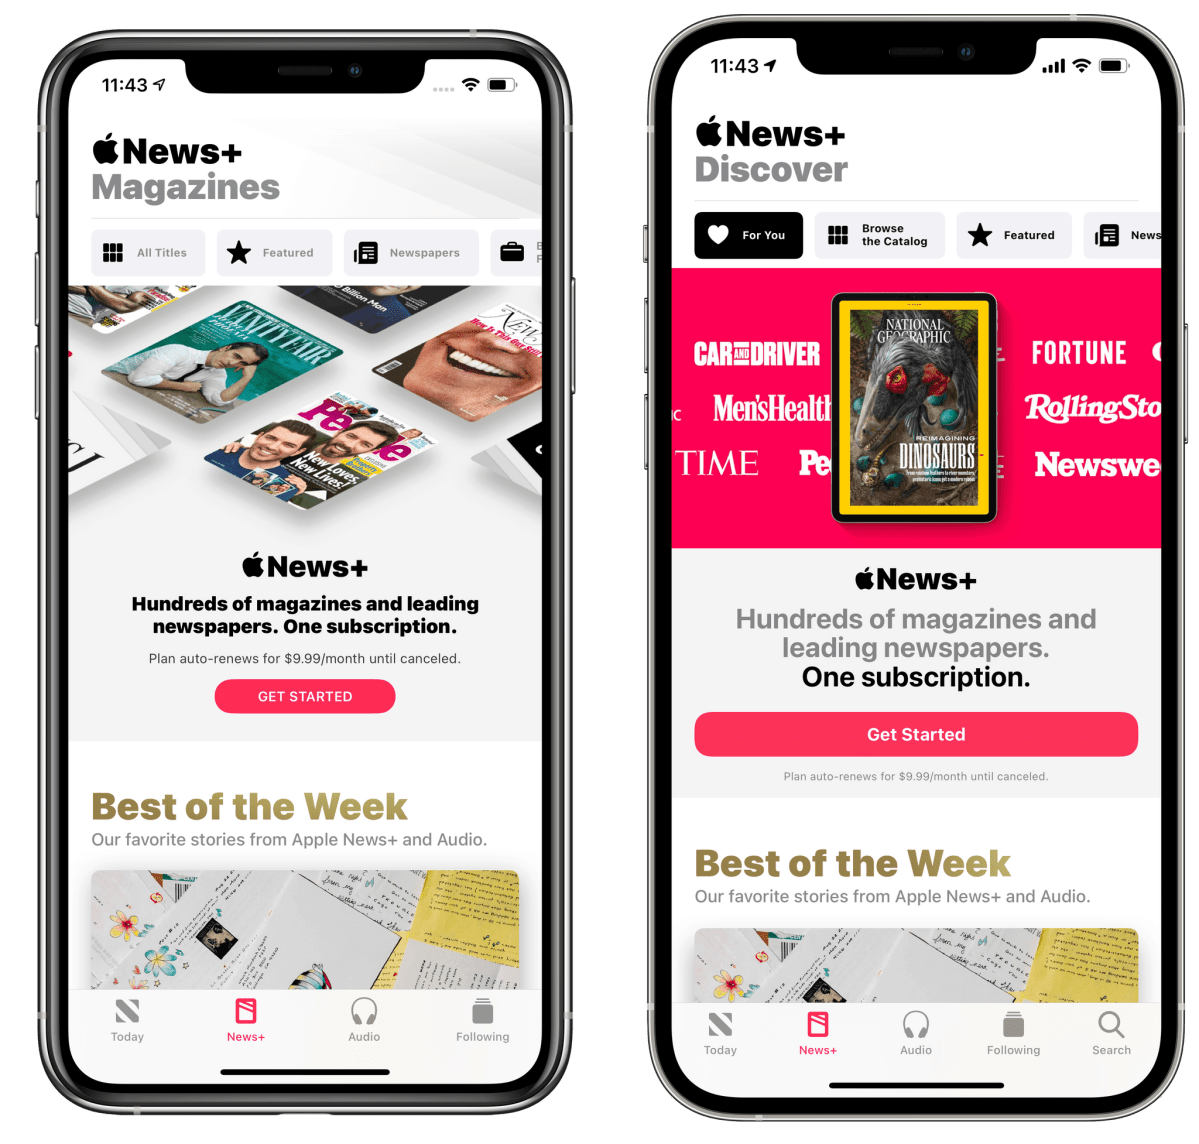 Apple News in iOS 14.5 (right) features a tweaked News+ page along with a dedicated Search tab.